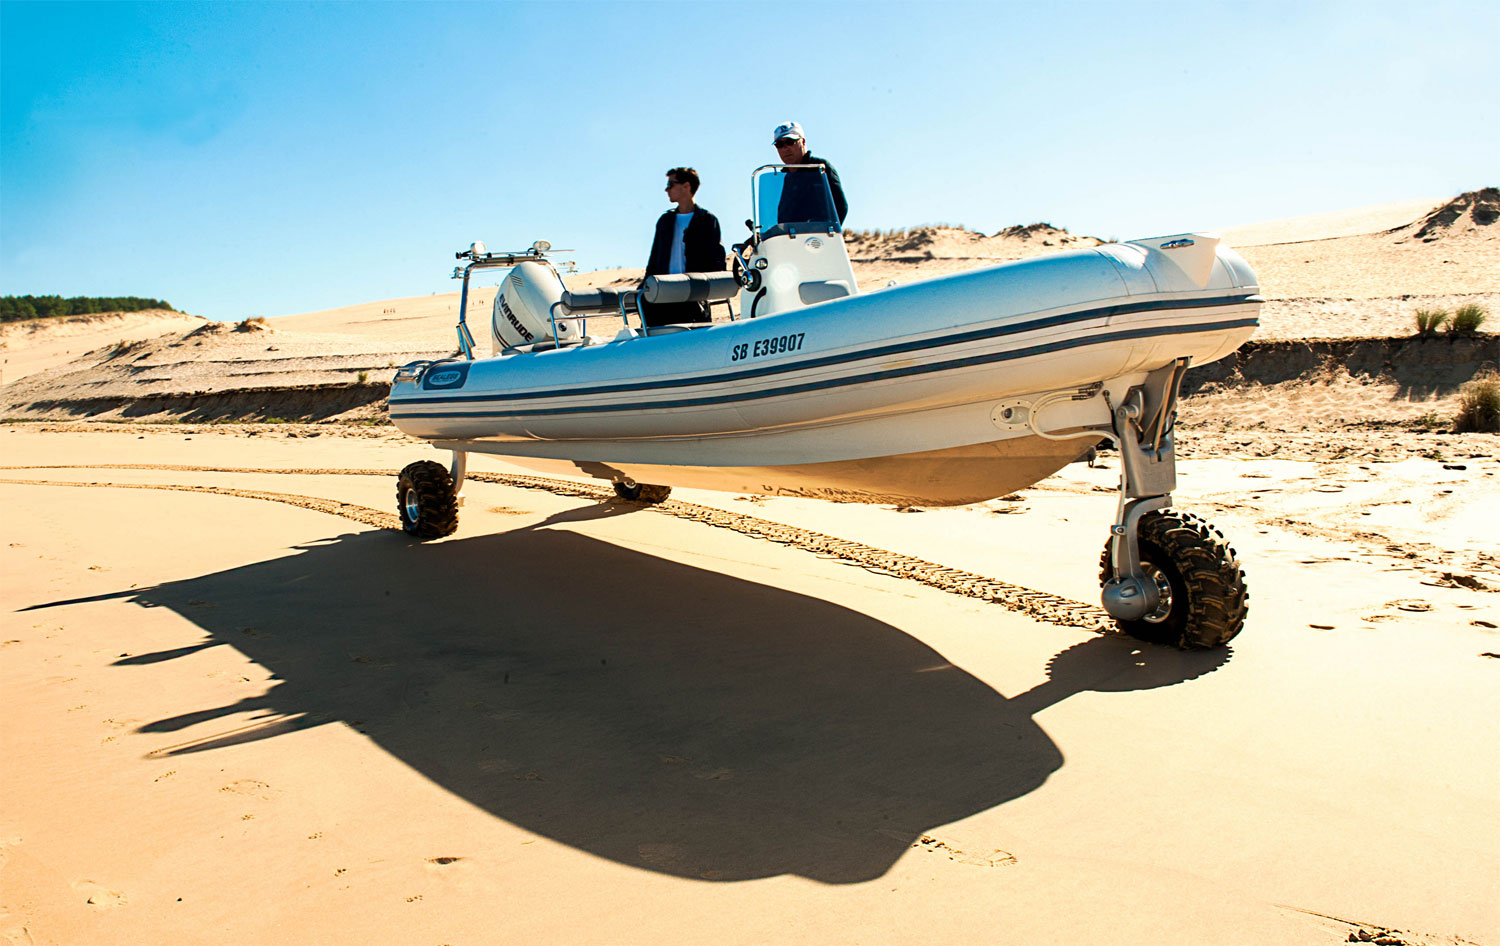 Design Home Game Online Innovation Unique Amphibious Rib Comes To The Market In